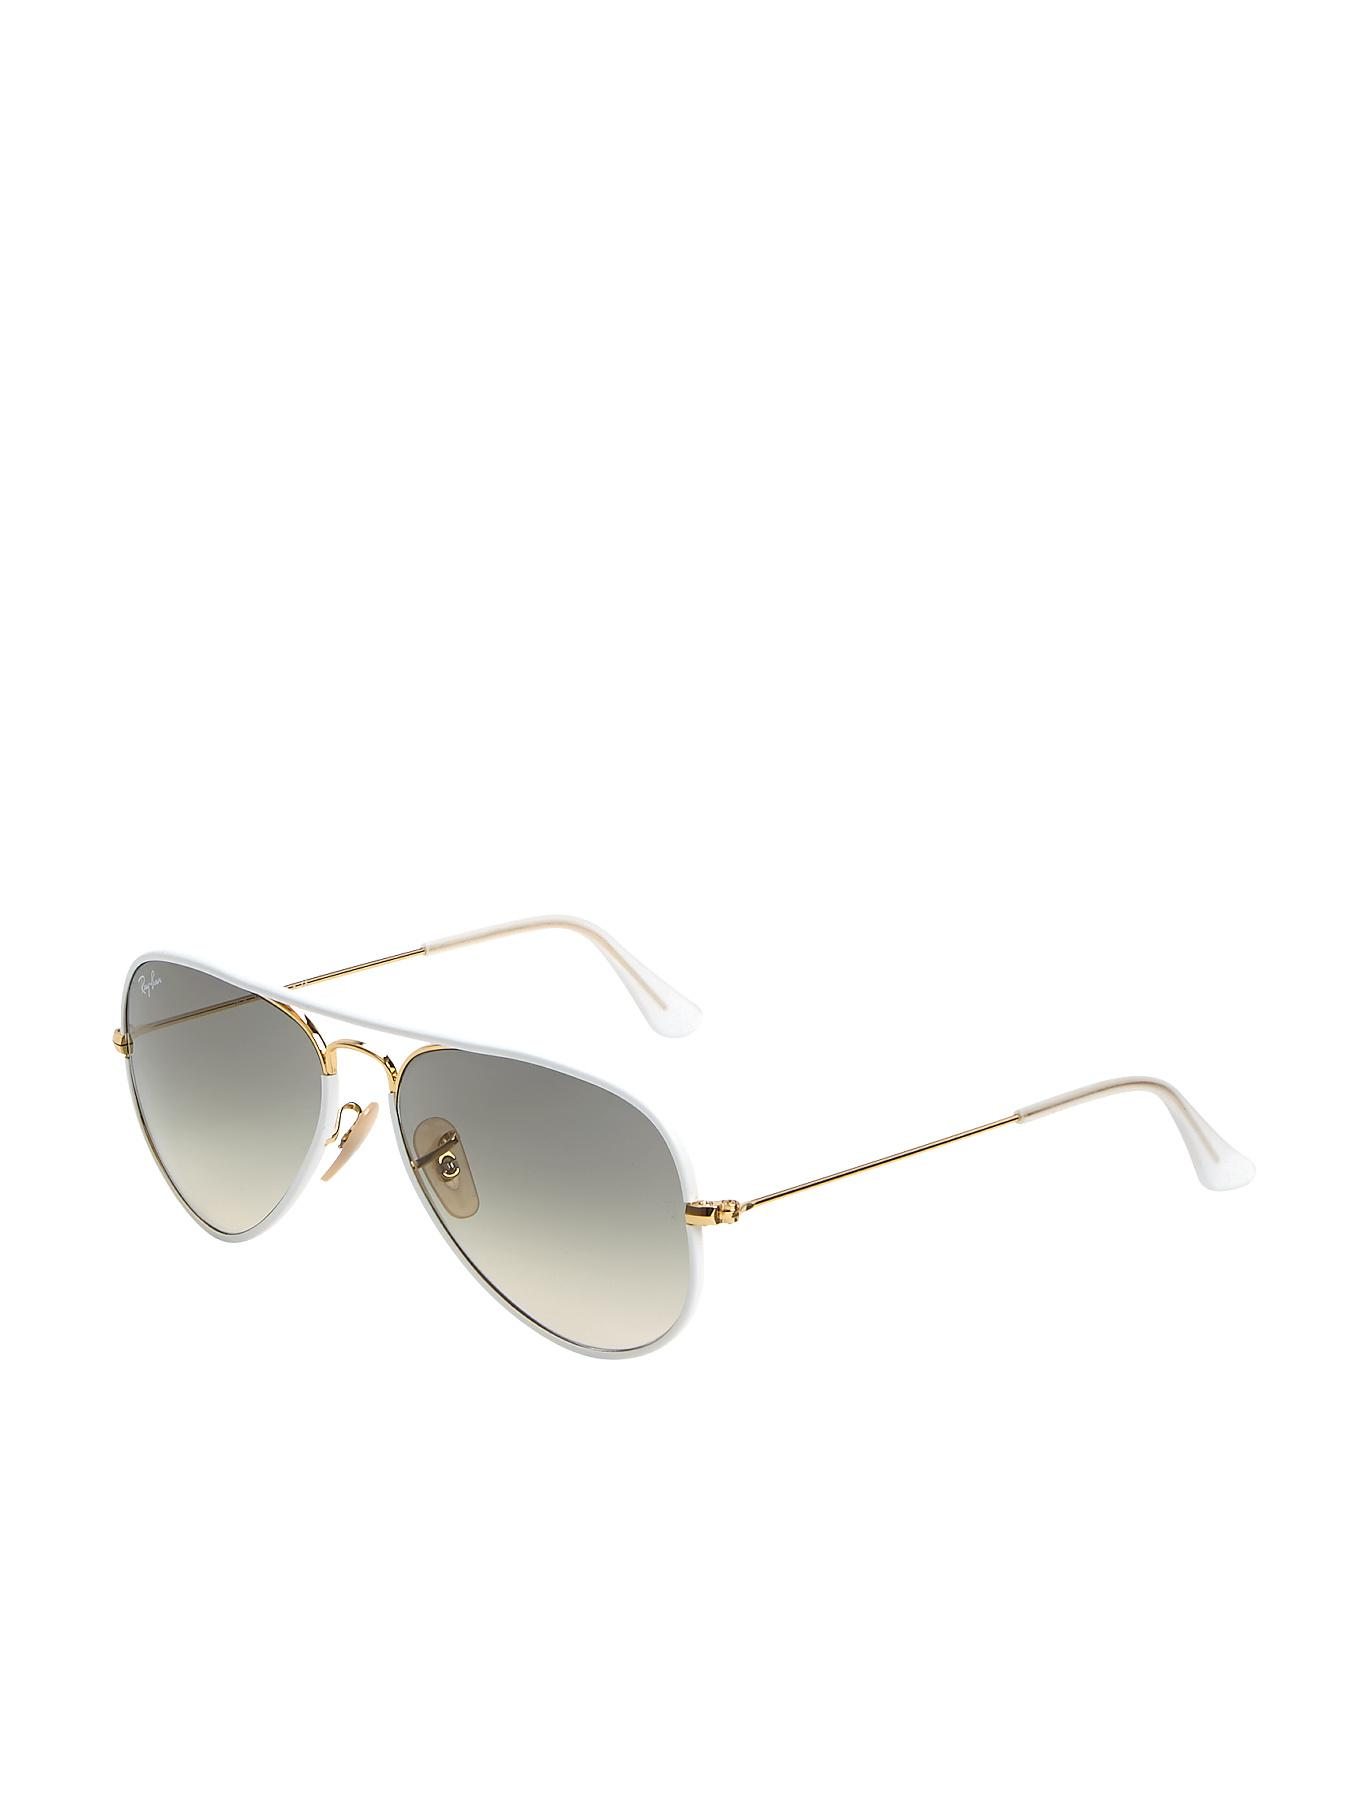 Ray-Ban Aviator Sunglasses - White, White